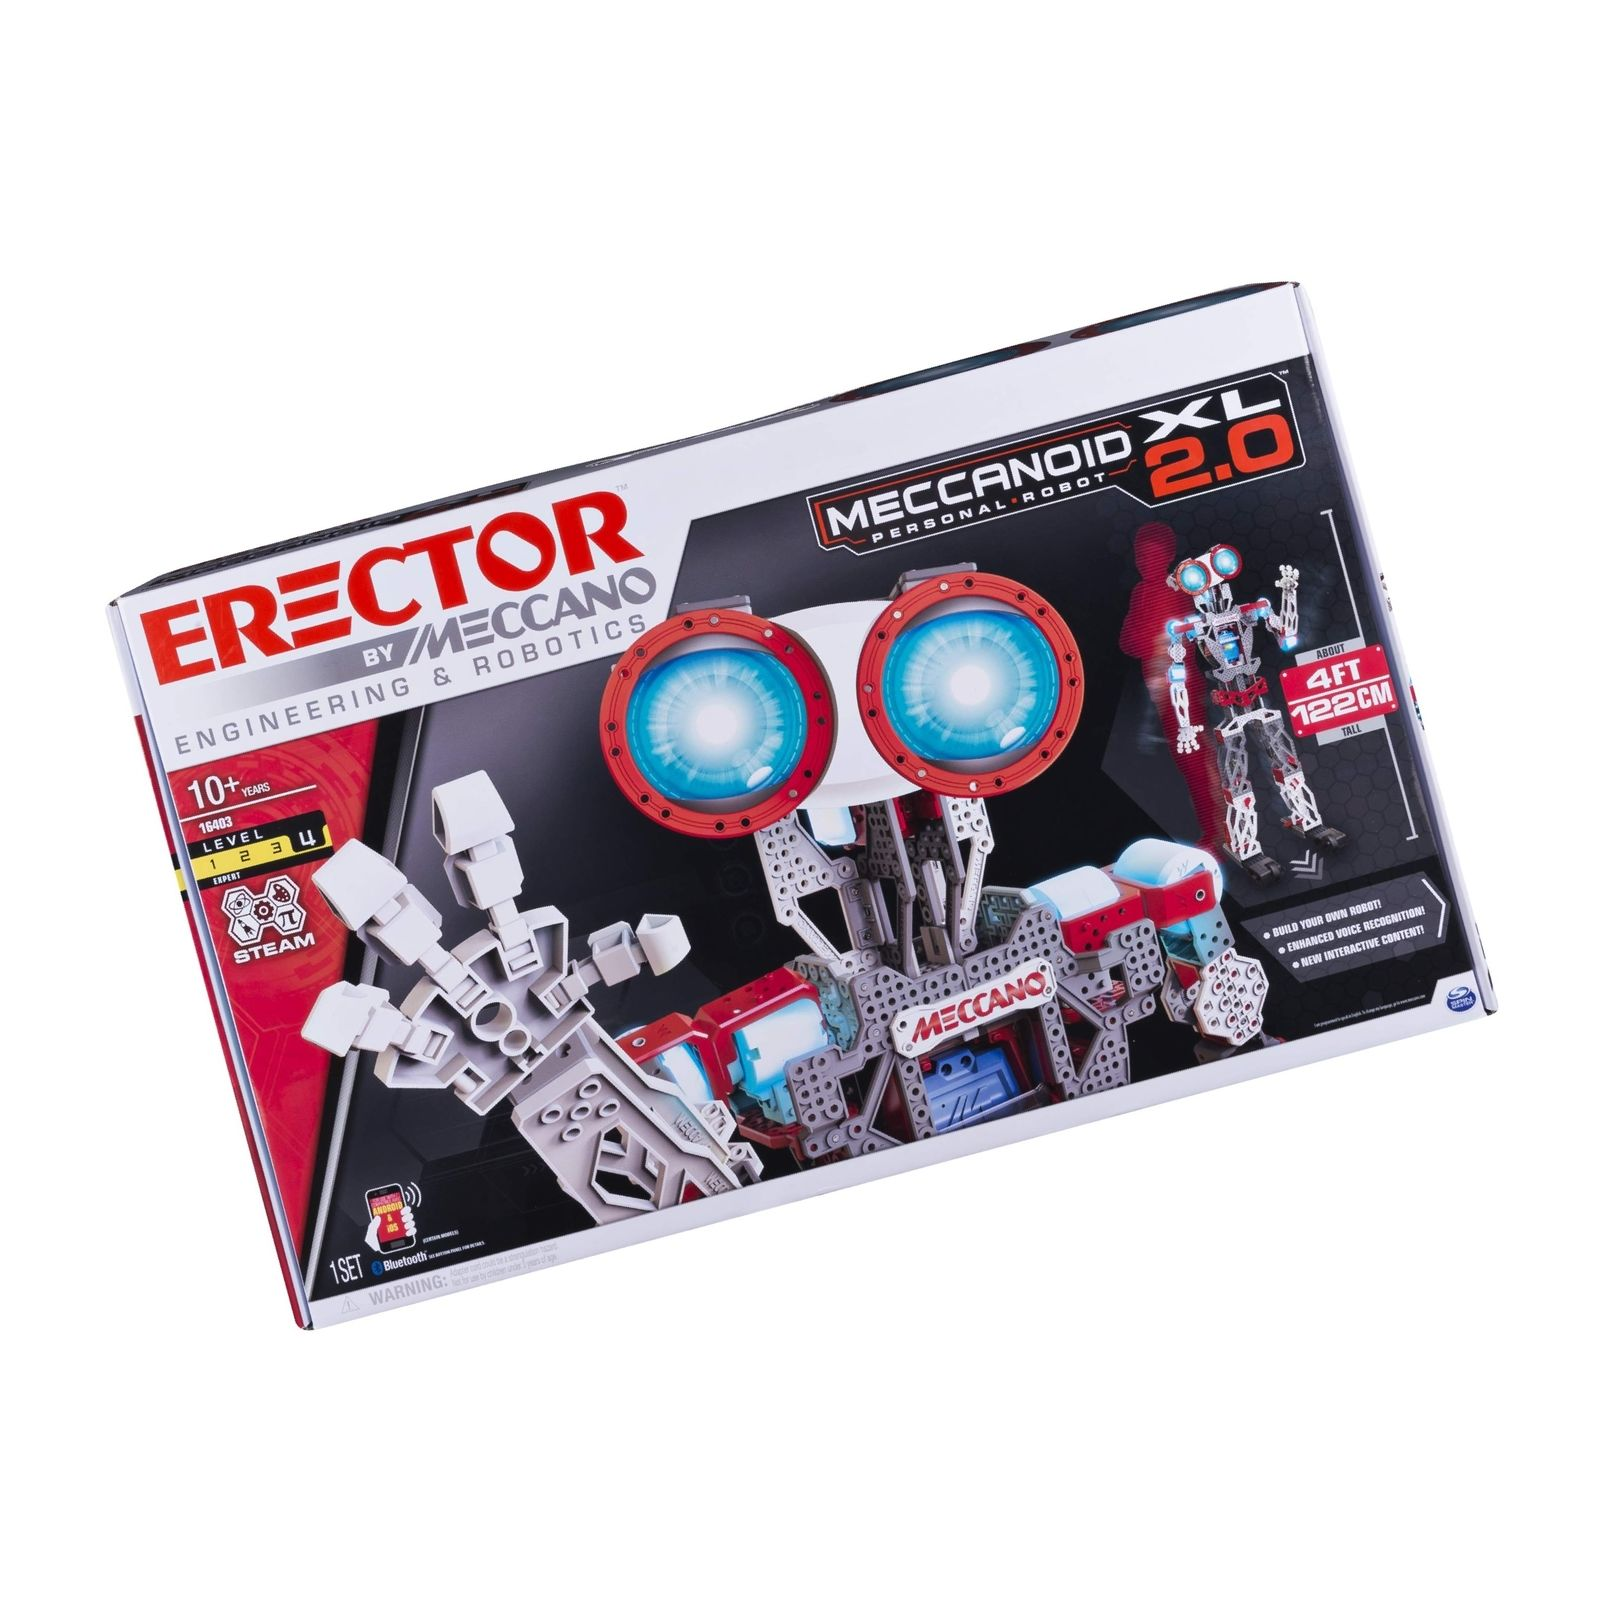 Erector by Meccano Meccanoid XL 2.0 Robot-Building Kit, STEM Education Toy fo...